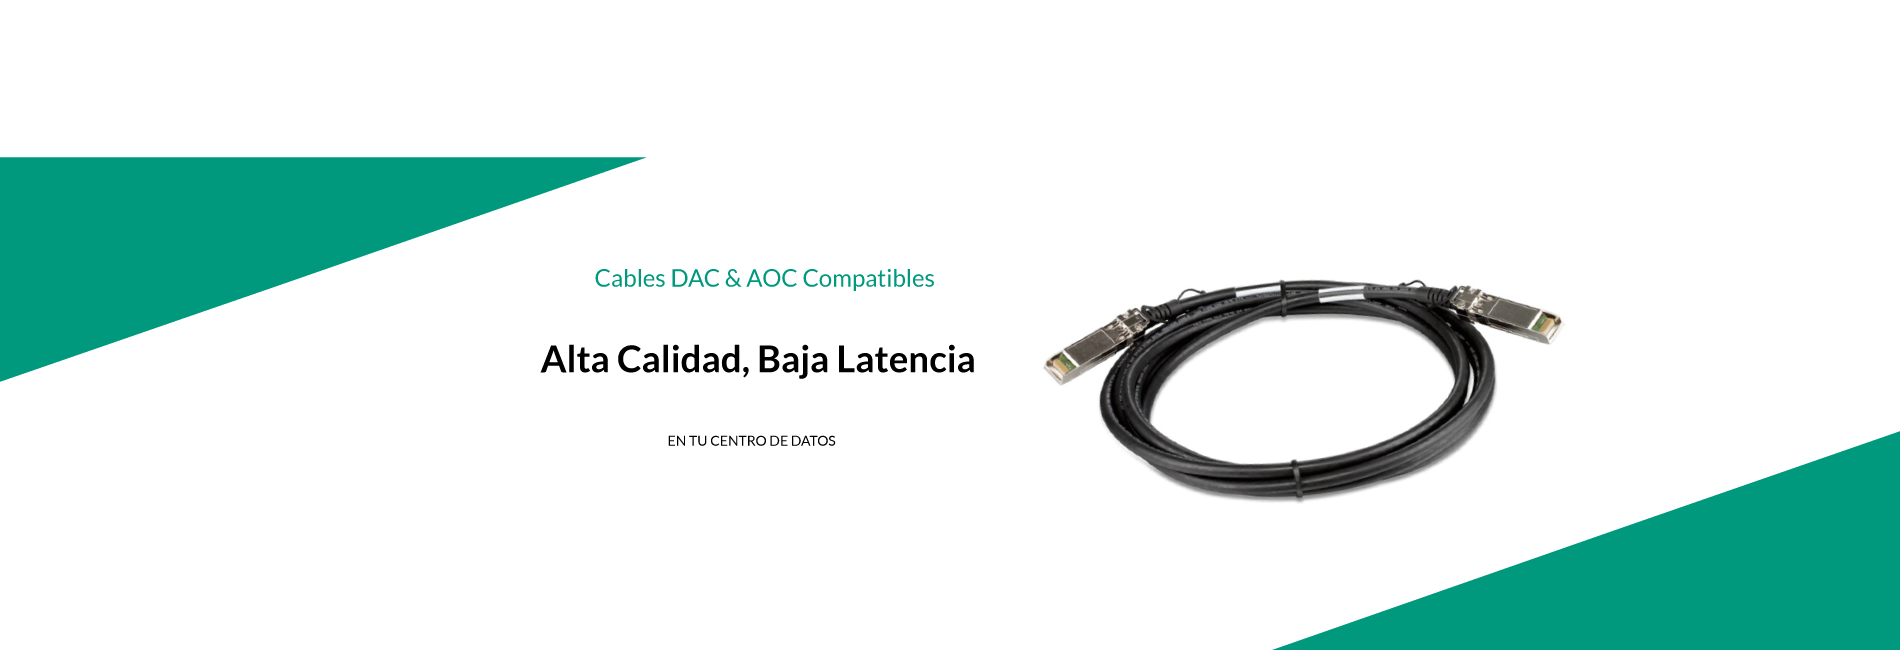 transceivers compatibles arpers cables dac & oac